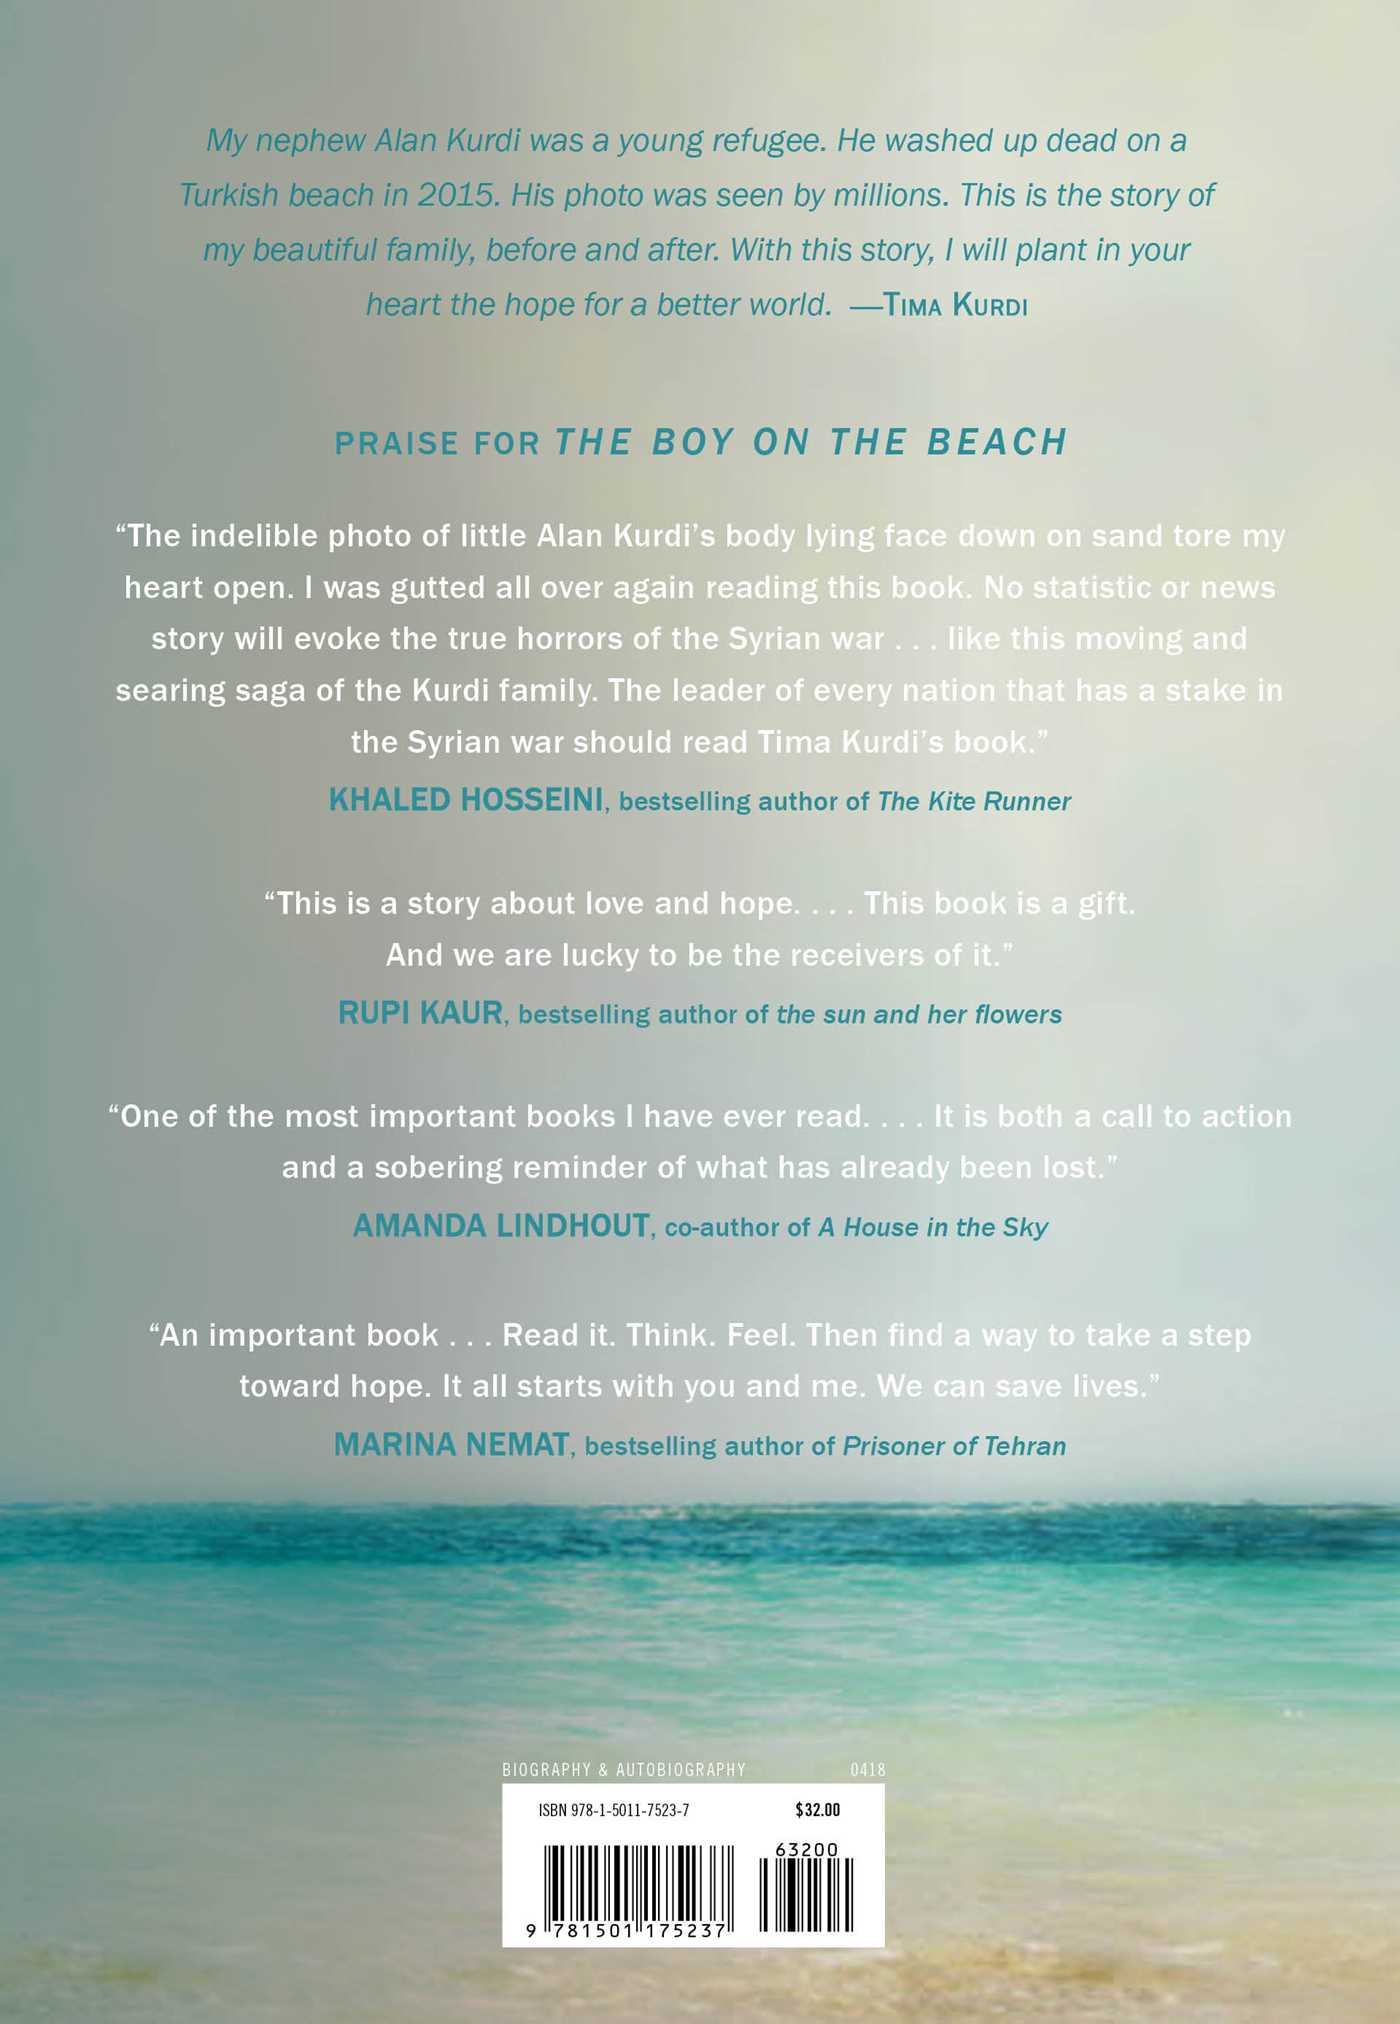 The boy on the beach 9781501175237 hr back